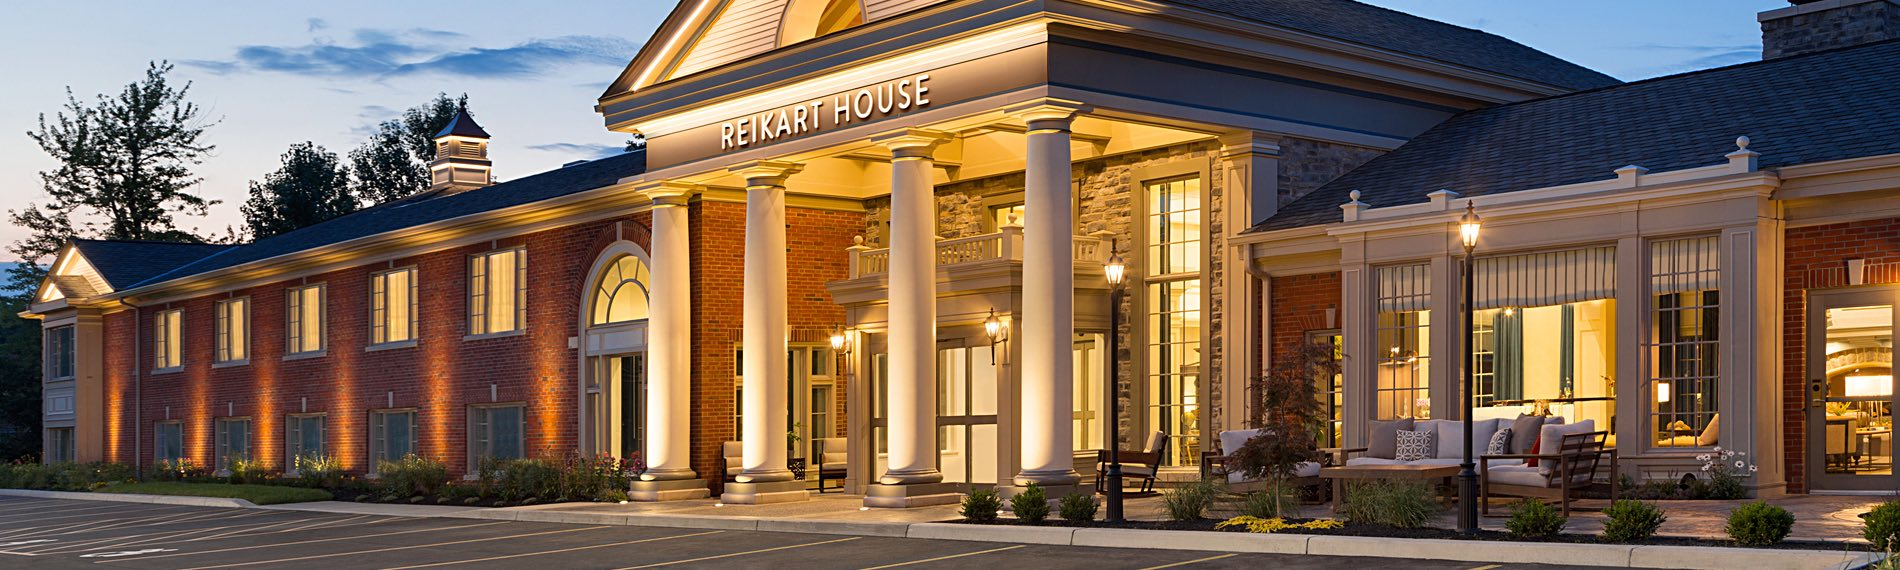 Exterior of the Reikart House building with 4 large columns at entrance lit up at night